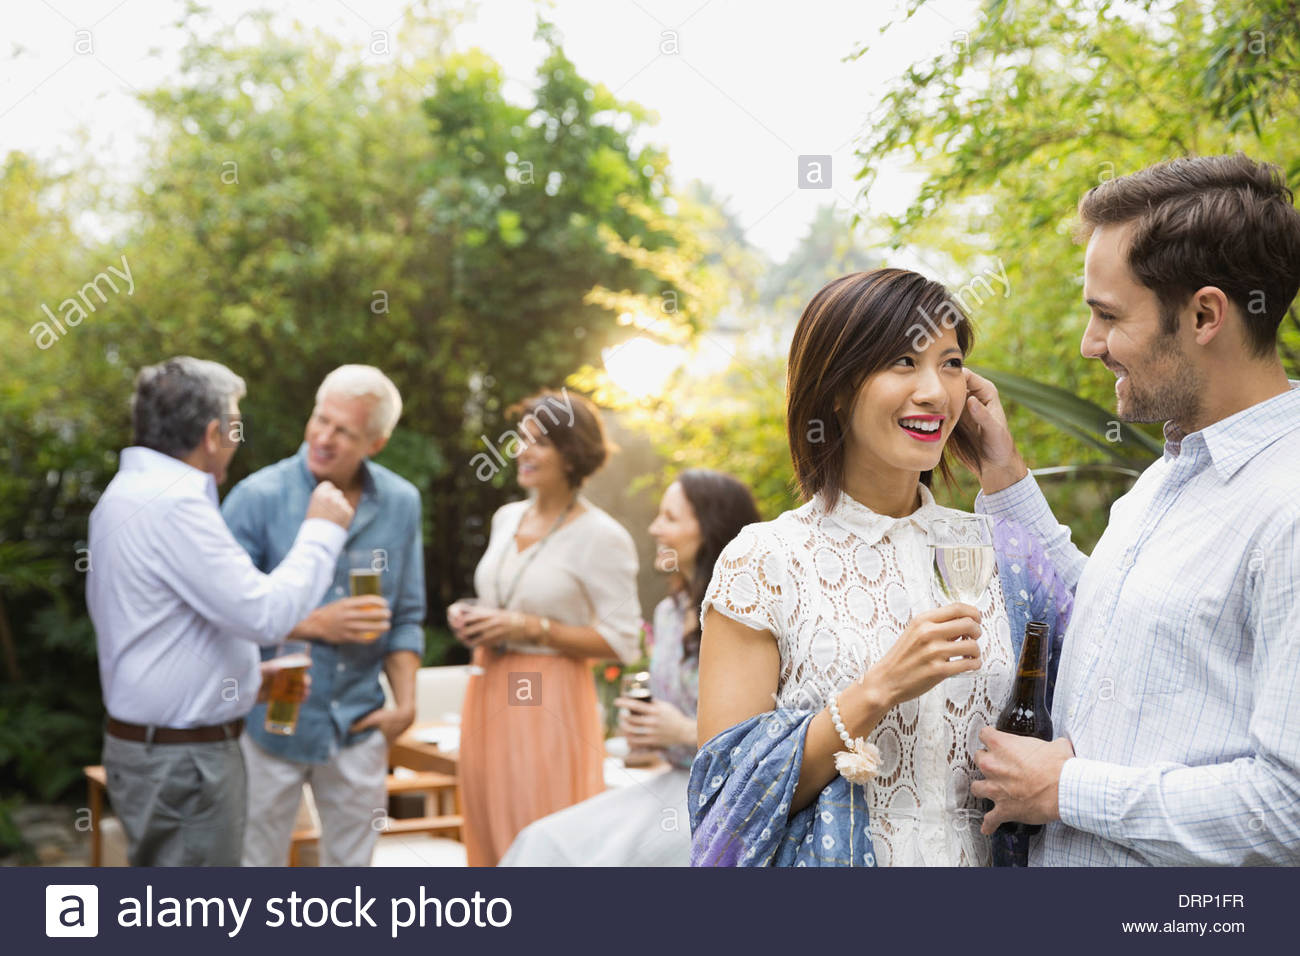 Couple with drinks at outdoor party - Stock Image